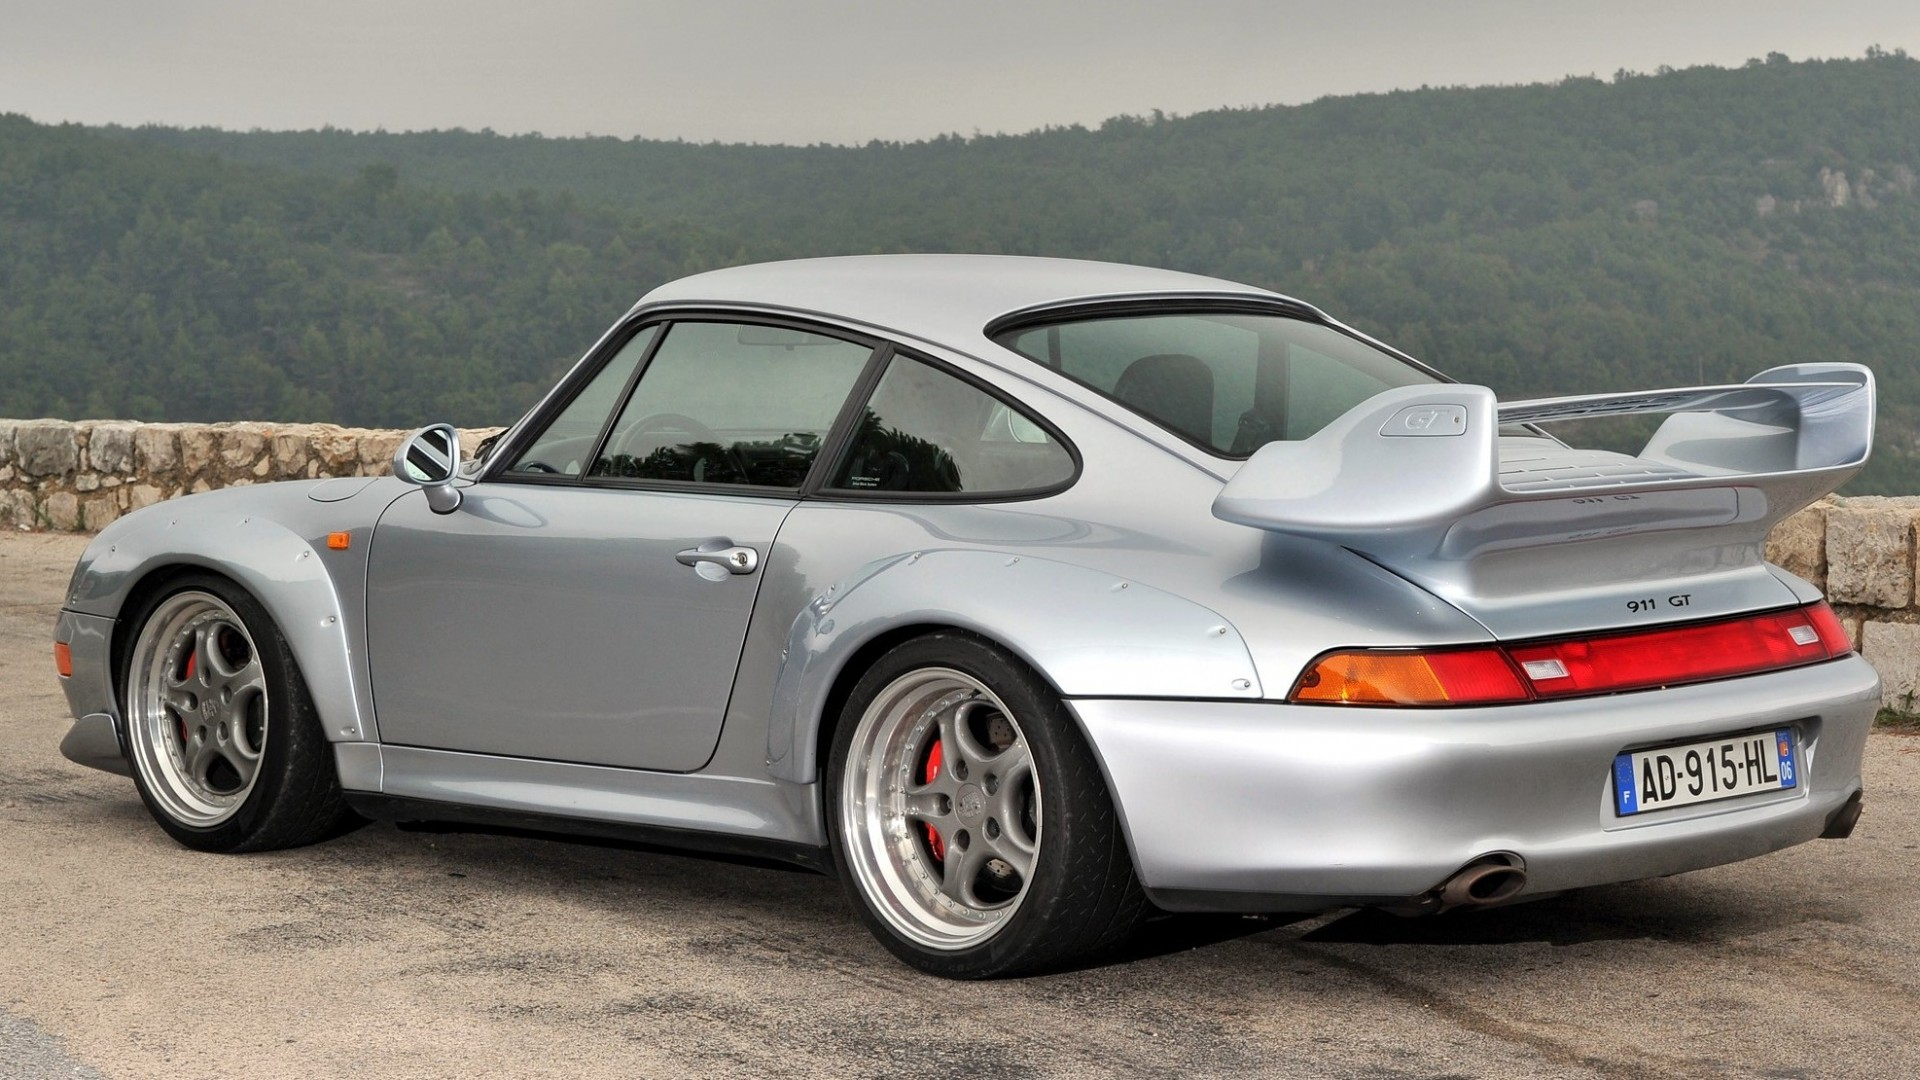 Porsche cars 911 gt2 993 wallpaper